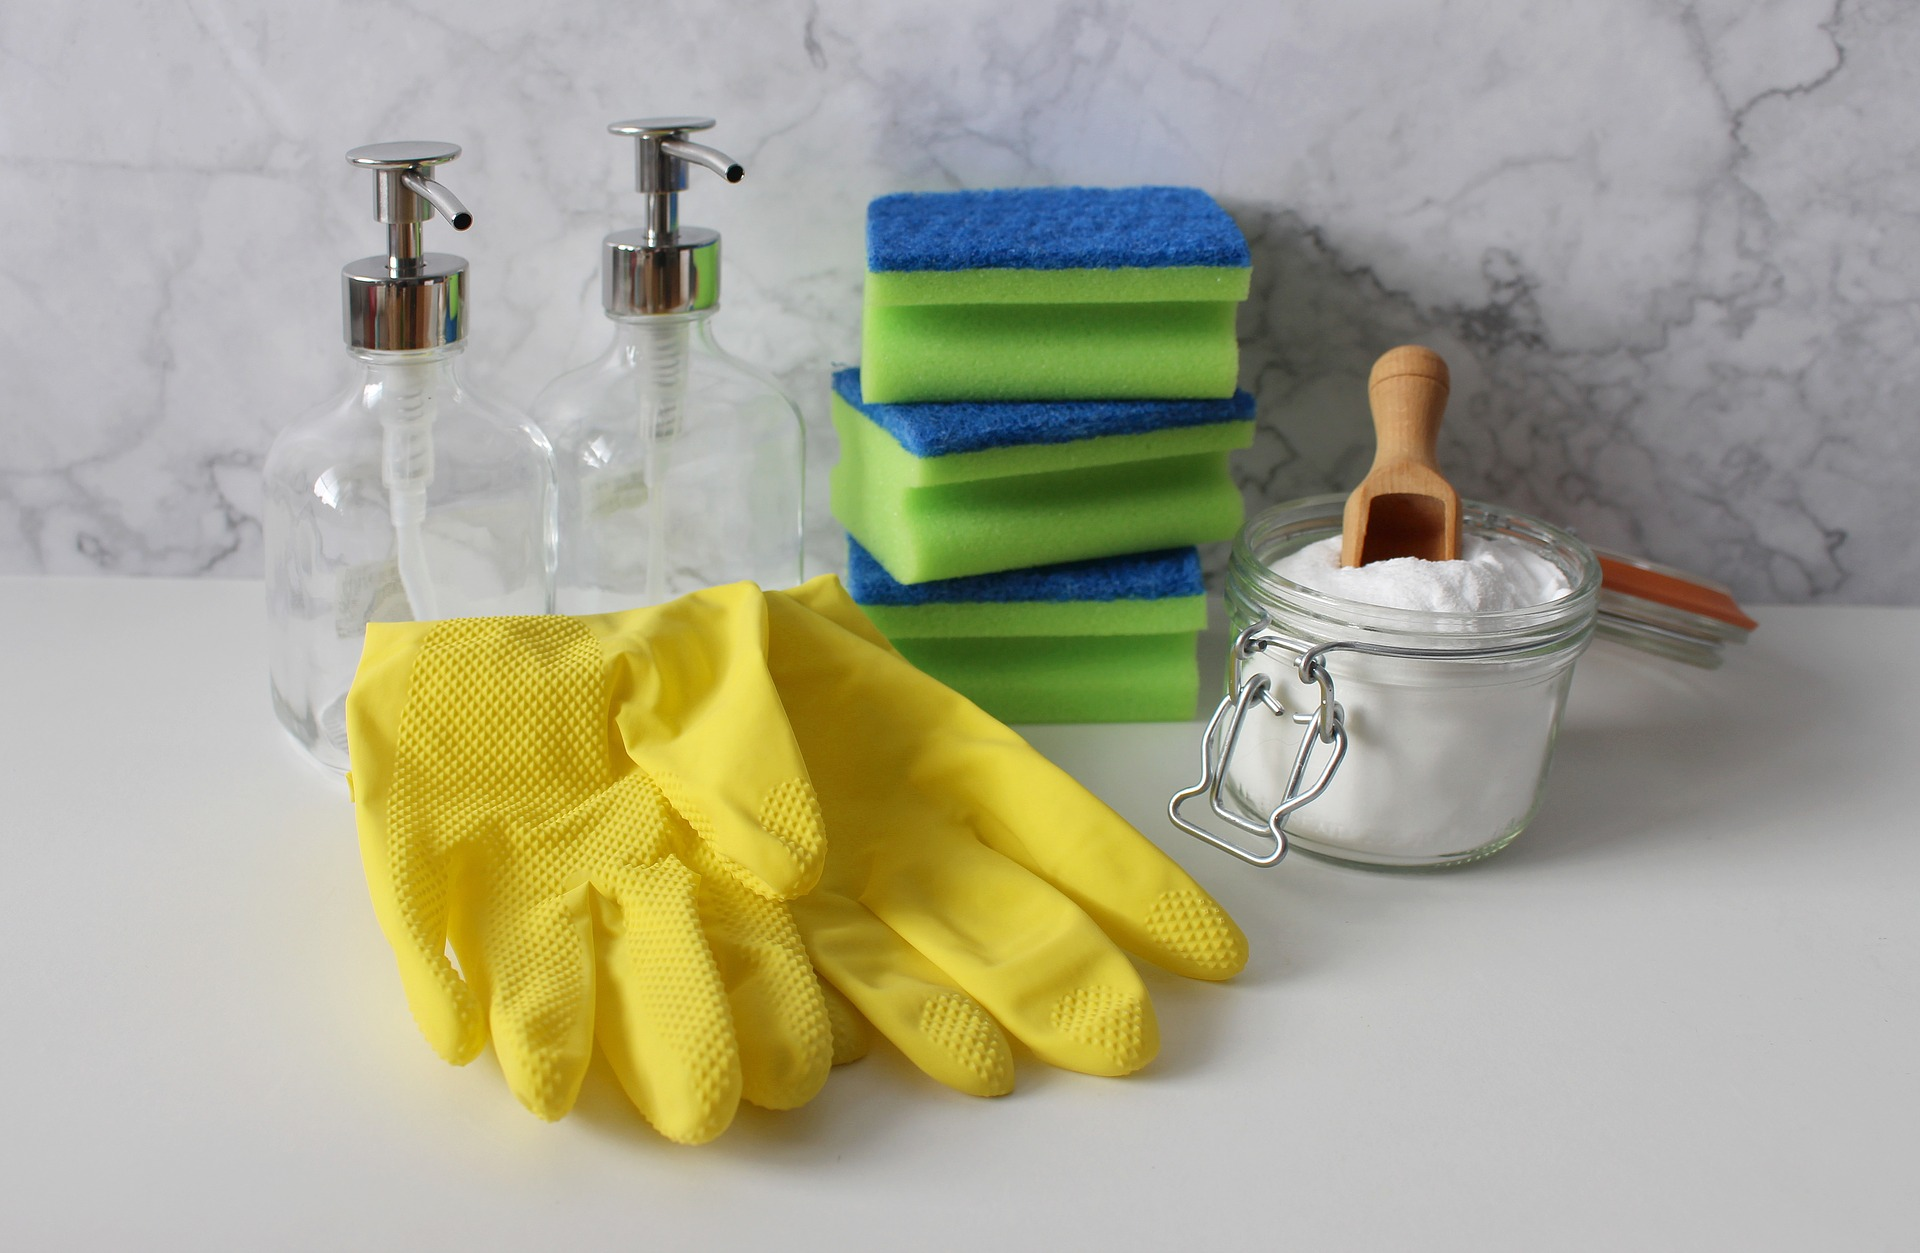 A Healthy And Clean Home: Chemical Free